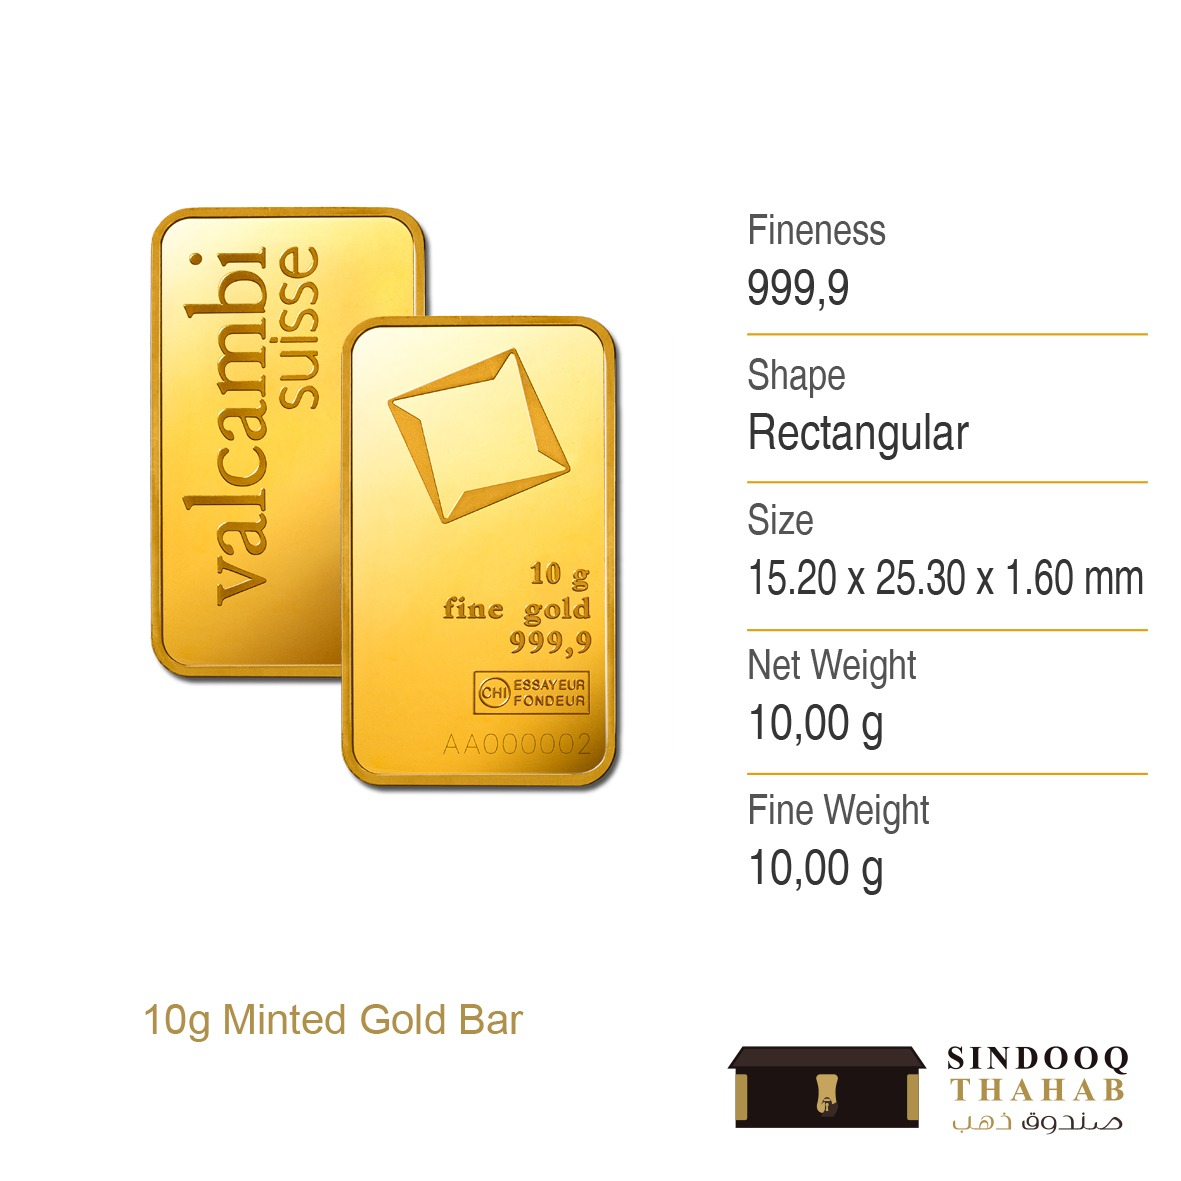 10g Minted Gold Bar